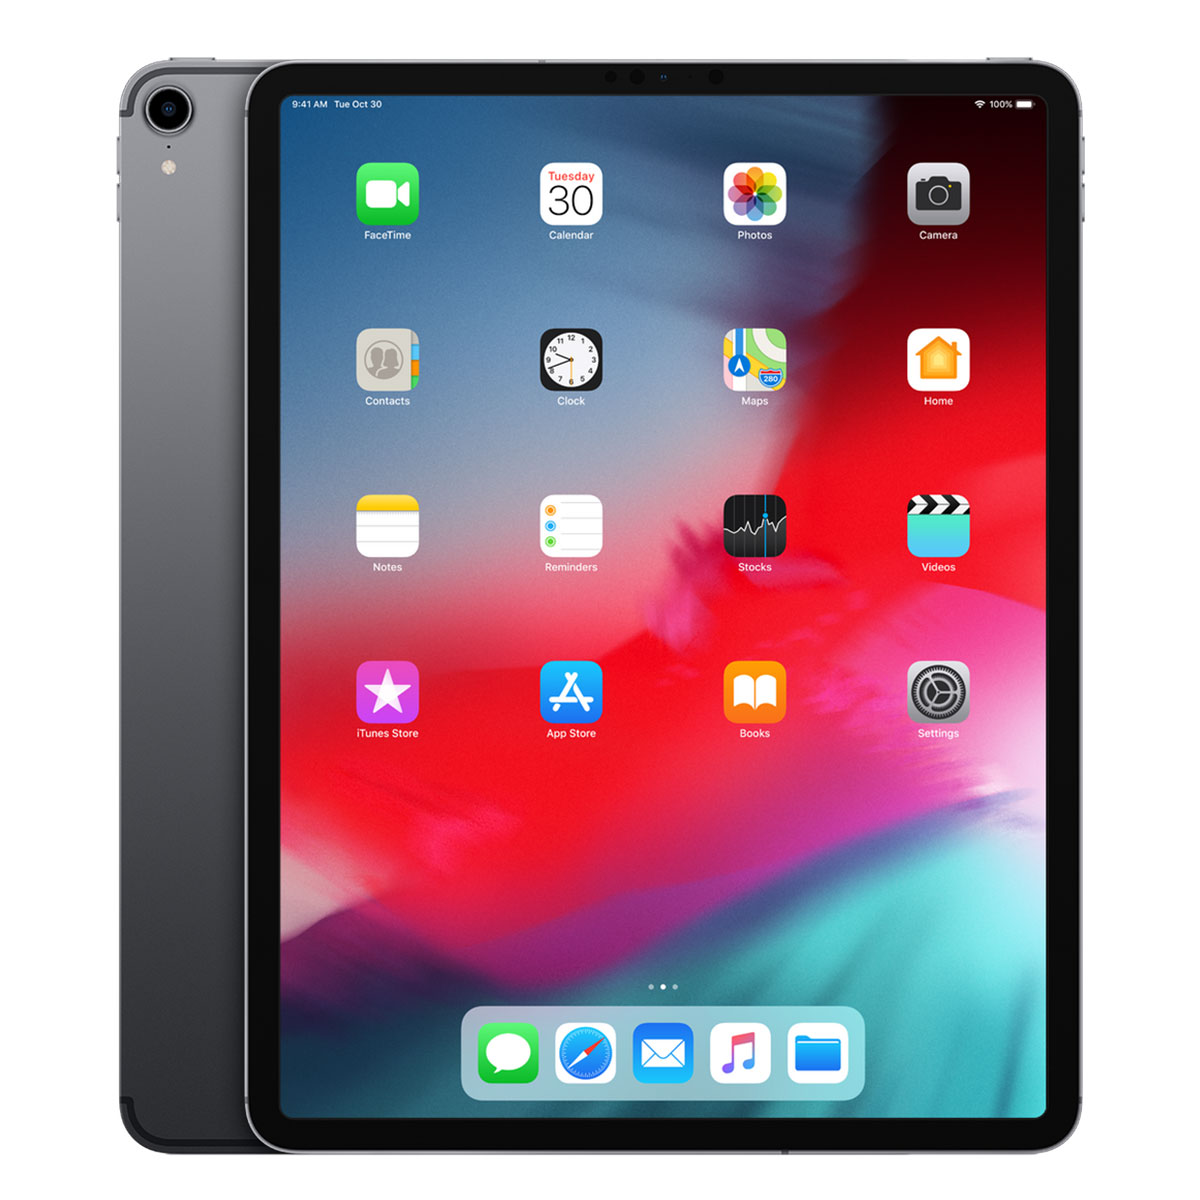 iPad Pro 12.9-inch (3rd Generation) 64GB Wi-Fi Cellular Space Gray - PTA Approved